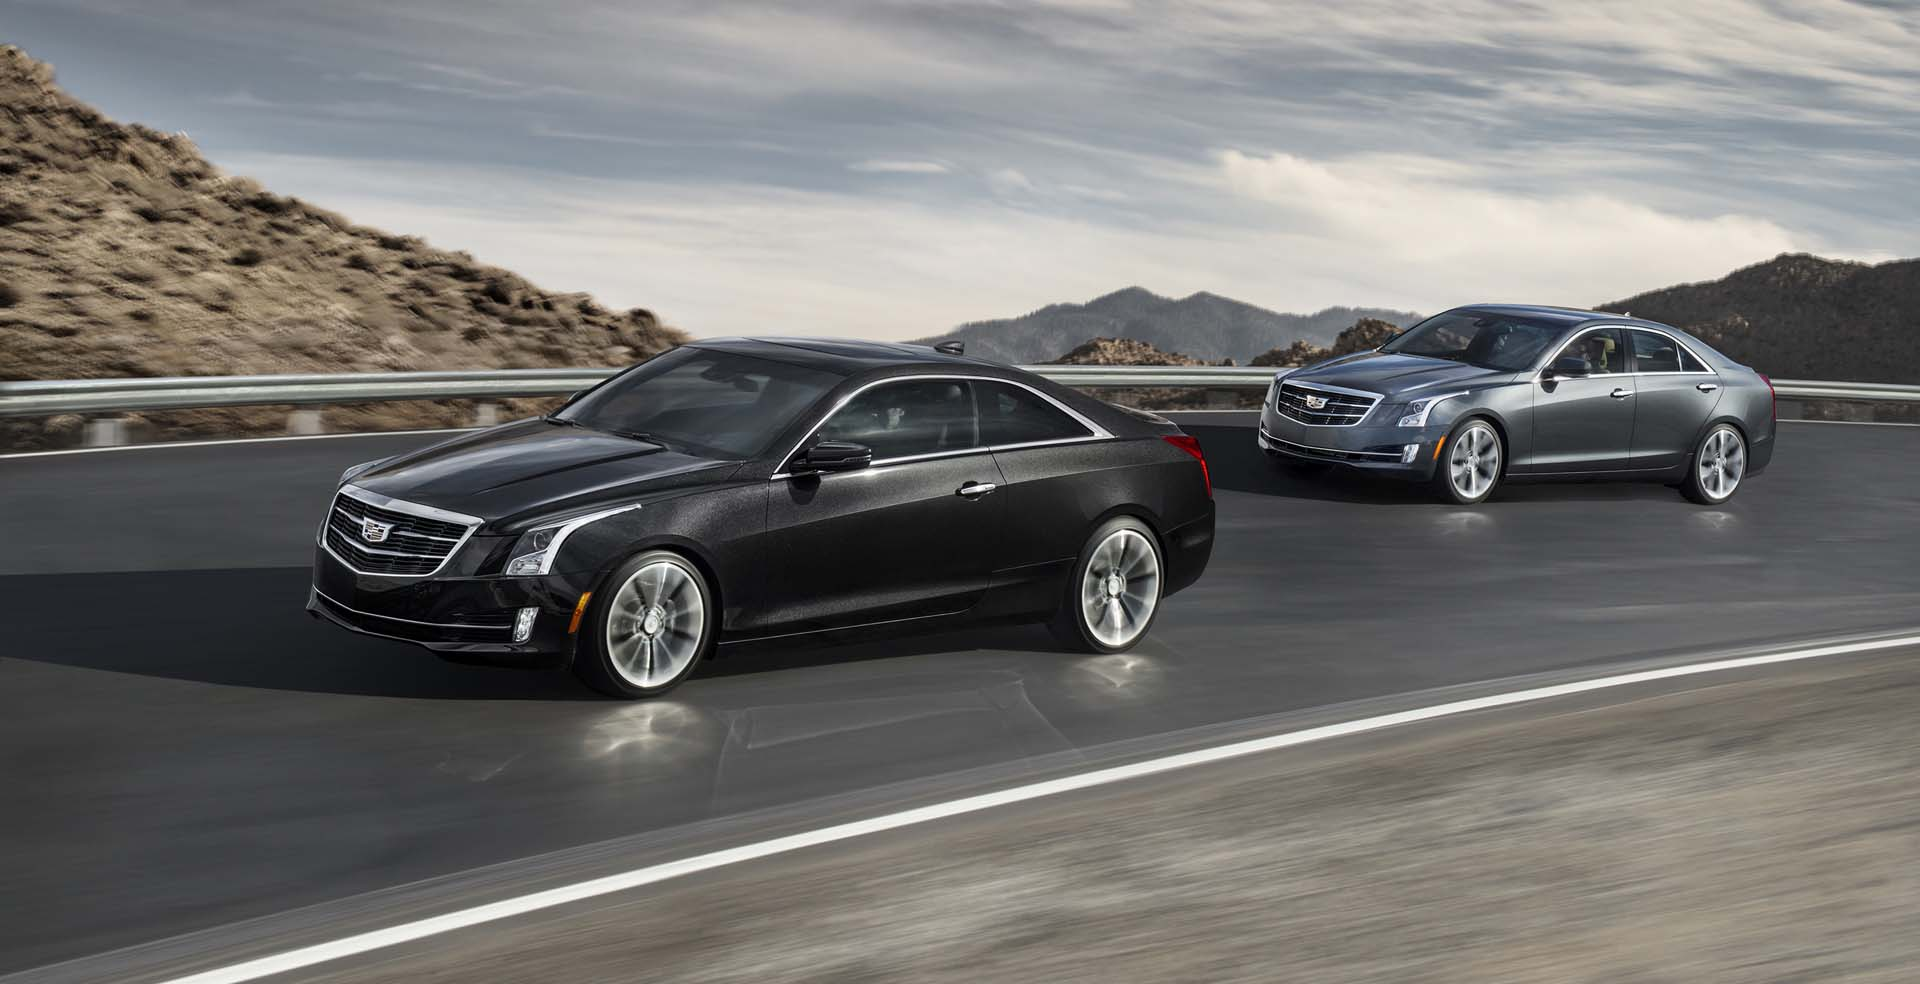 2017 cadillac ats vs 2016 bmw 3 series compare cars